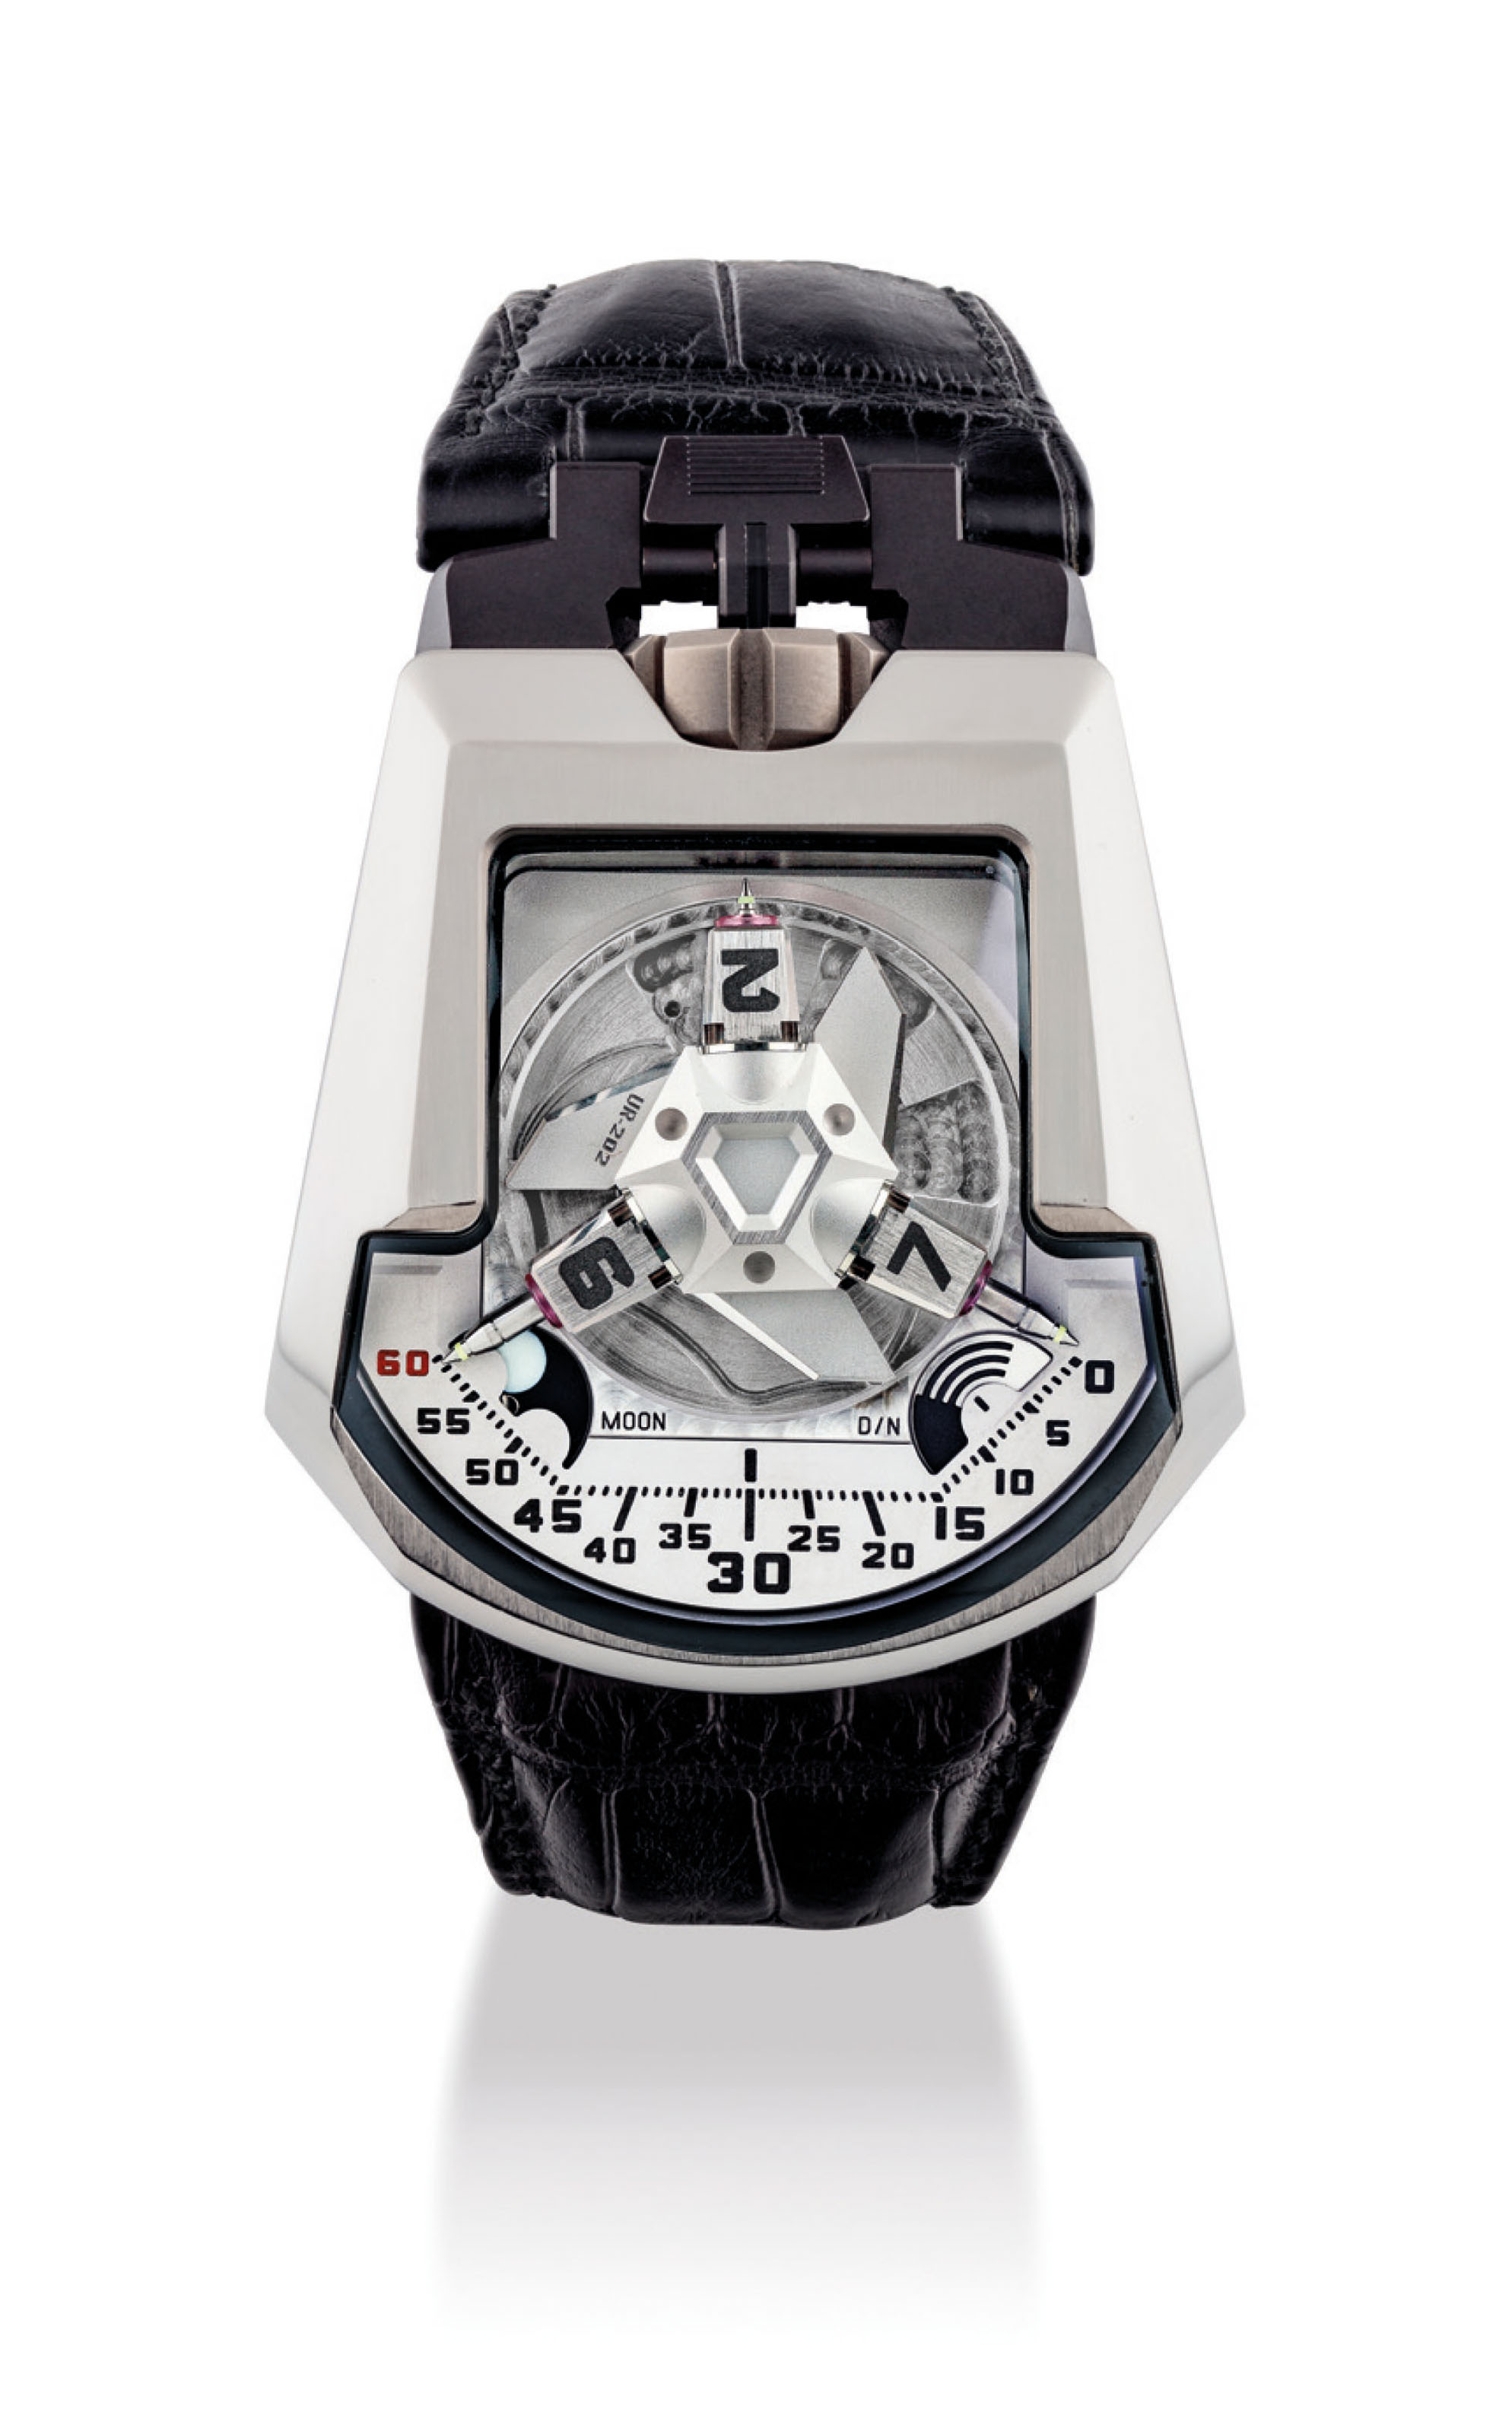 URWERK. A RARE AND UNUSUAL 18K WHITE GOLD AND TITANIUM AUTOMATIC WRISTWATCH WITH 3-DIMENSIONAL SATELLITE HOUR DISPLAY, TELESCOPIC MINUTE HAND, DAY/NIGHT INDICATOR AND MOON PHASES